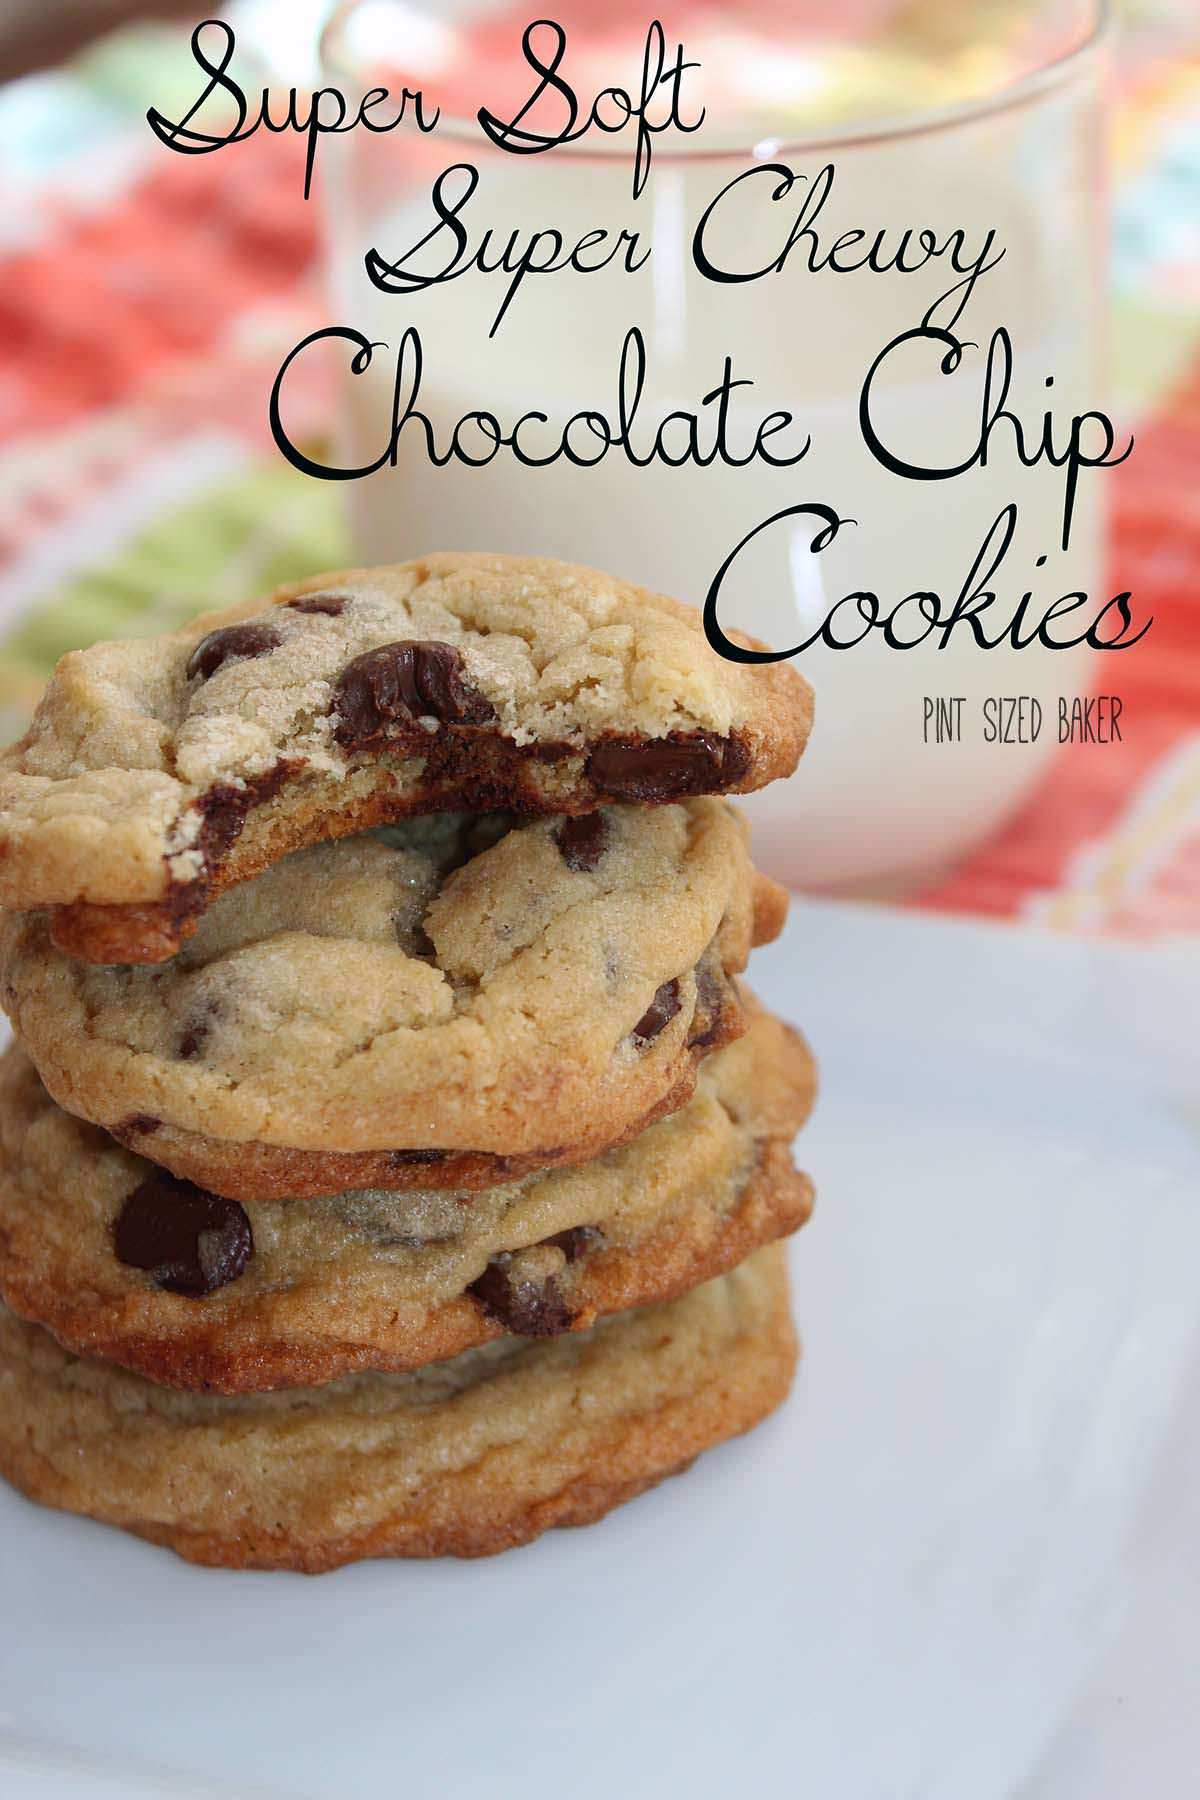 Squishy Chocolate Chip Cookies : Soft and Chewy Chocolate Chip Cookies - Pint Sized Baker